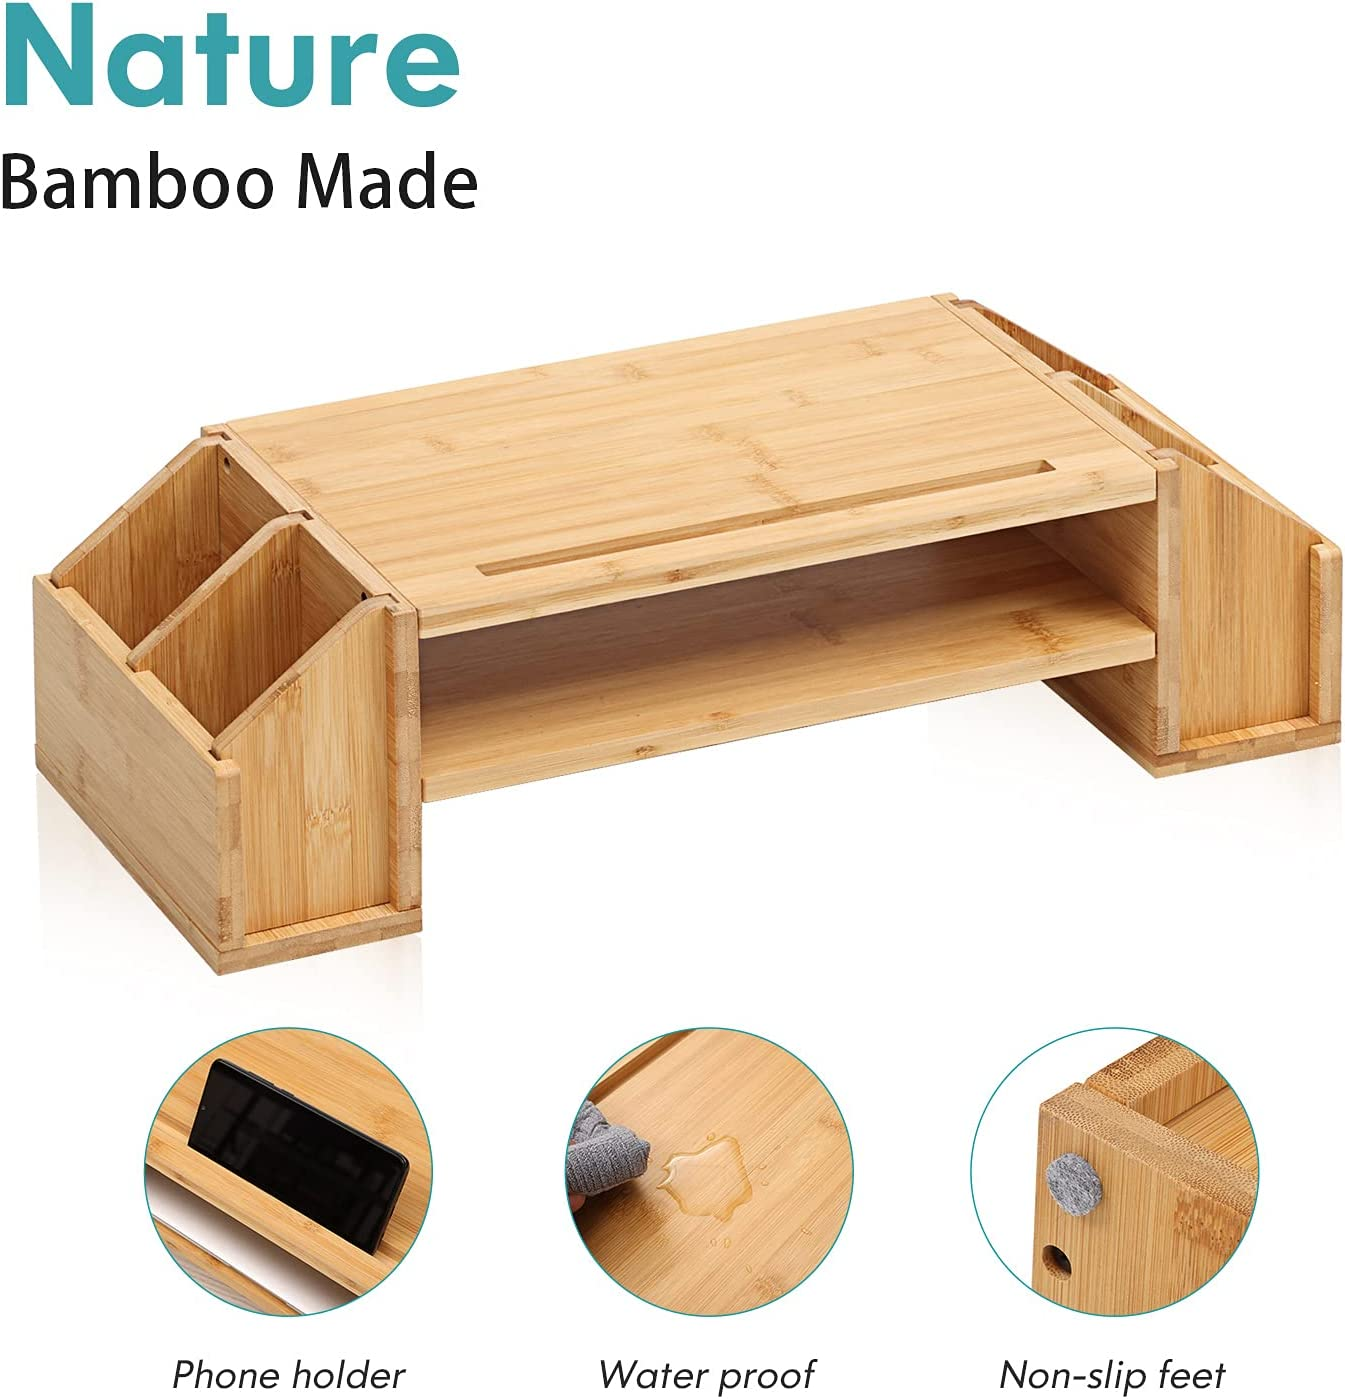 Bamboo Monitor Stand - 2 Tiers Computer Monitor Riser with 4 Pockets Storage Organizer, Cellphone Holder, Desk Organizer for Office Accessories for Printer, Computer, Laptop, Notebook, MR3-SG